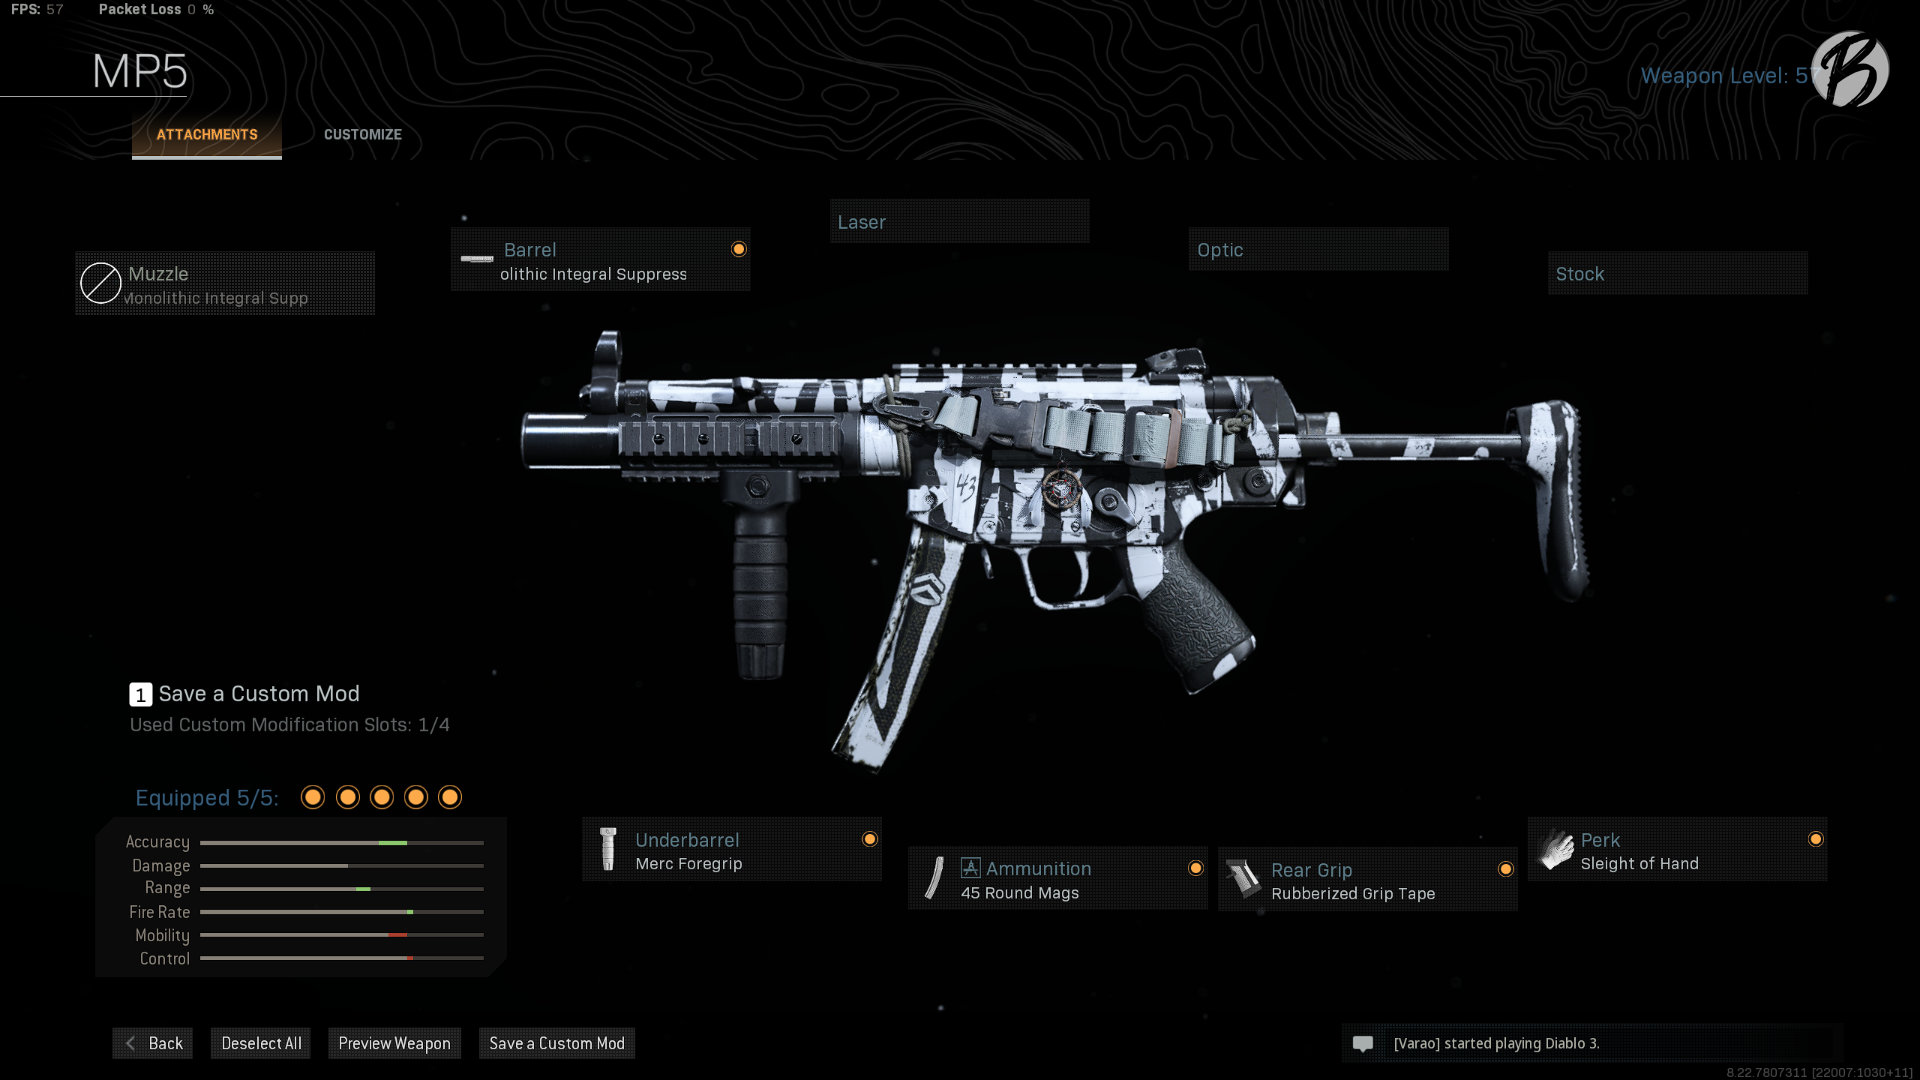 MP5: Monolithic Integral Suppressor, Merc Foregrip, 45 Round Magazin, Rubberized Grip Tape, Sleight of Hand